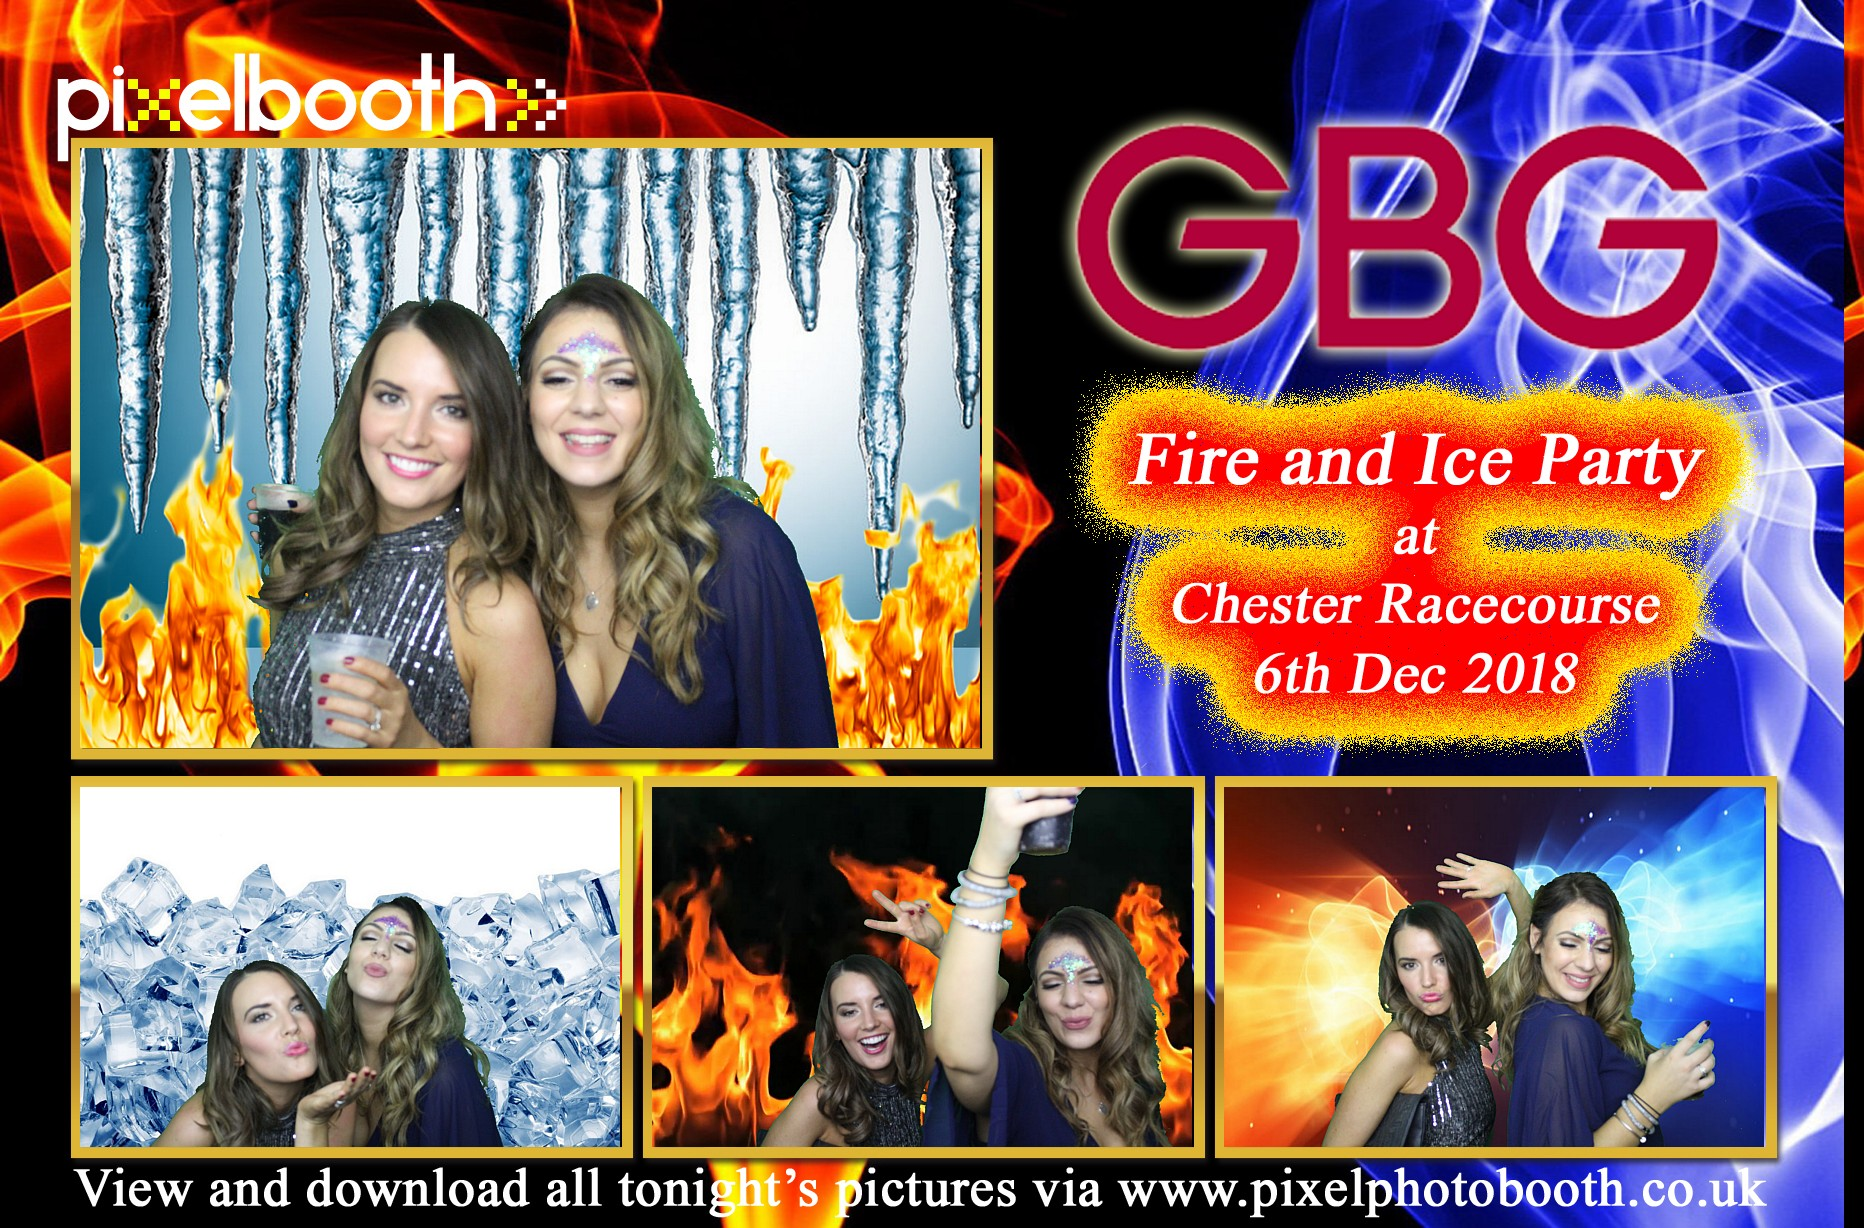 6th Dec 2018: GBG Fire and Ice Party at Chester Racecourse